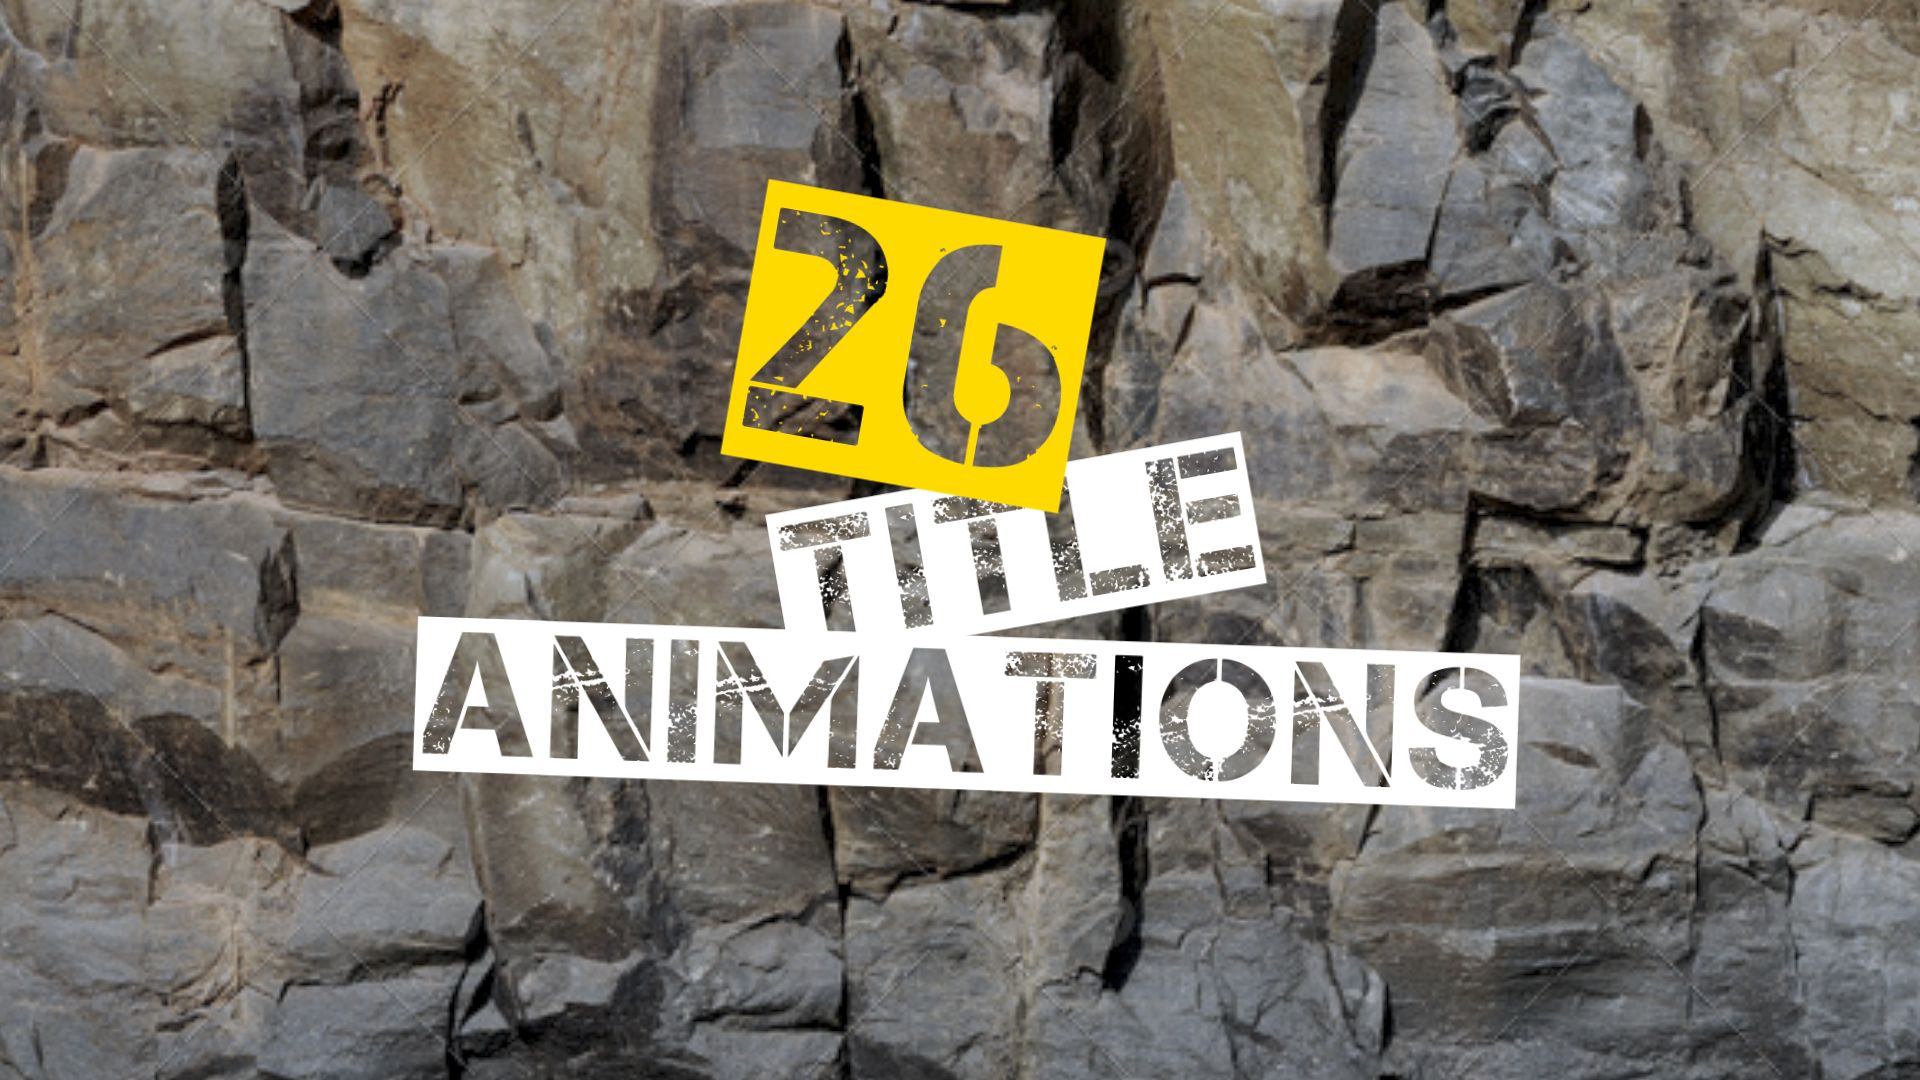 780 Title Animations - 28